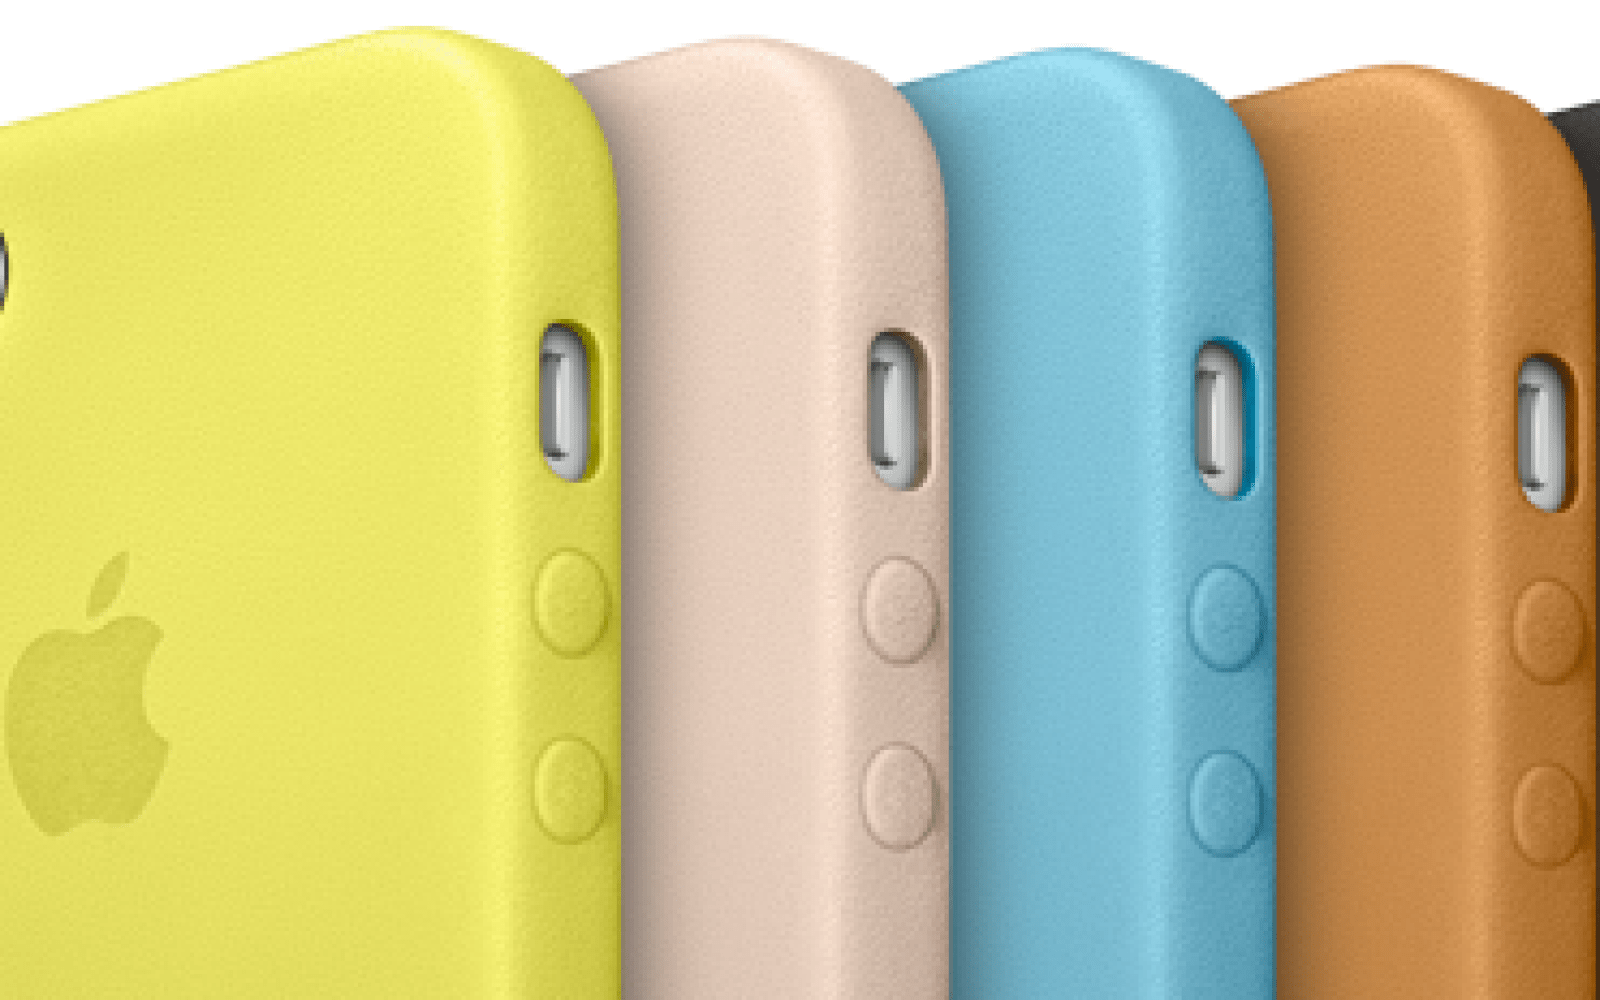 The best iPhone 5c (and iPhone 5s) cases already available online